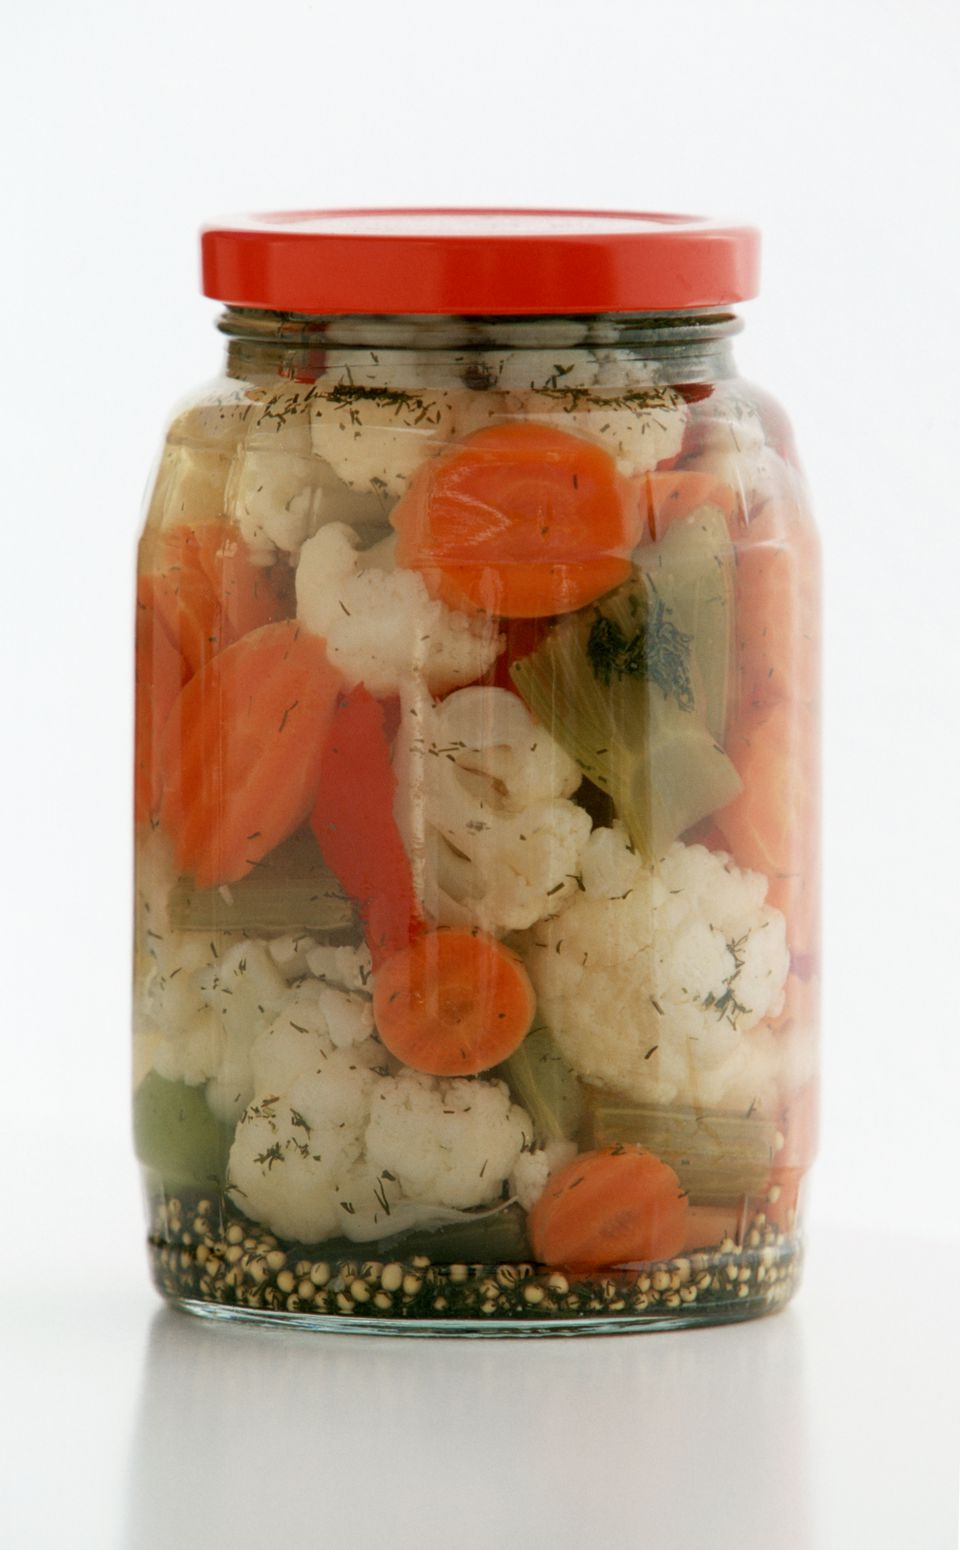 Giardiniera - Italian Pickled Vegetables